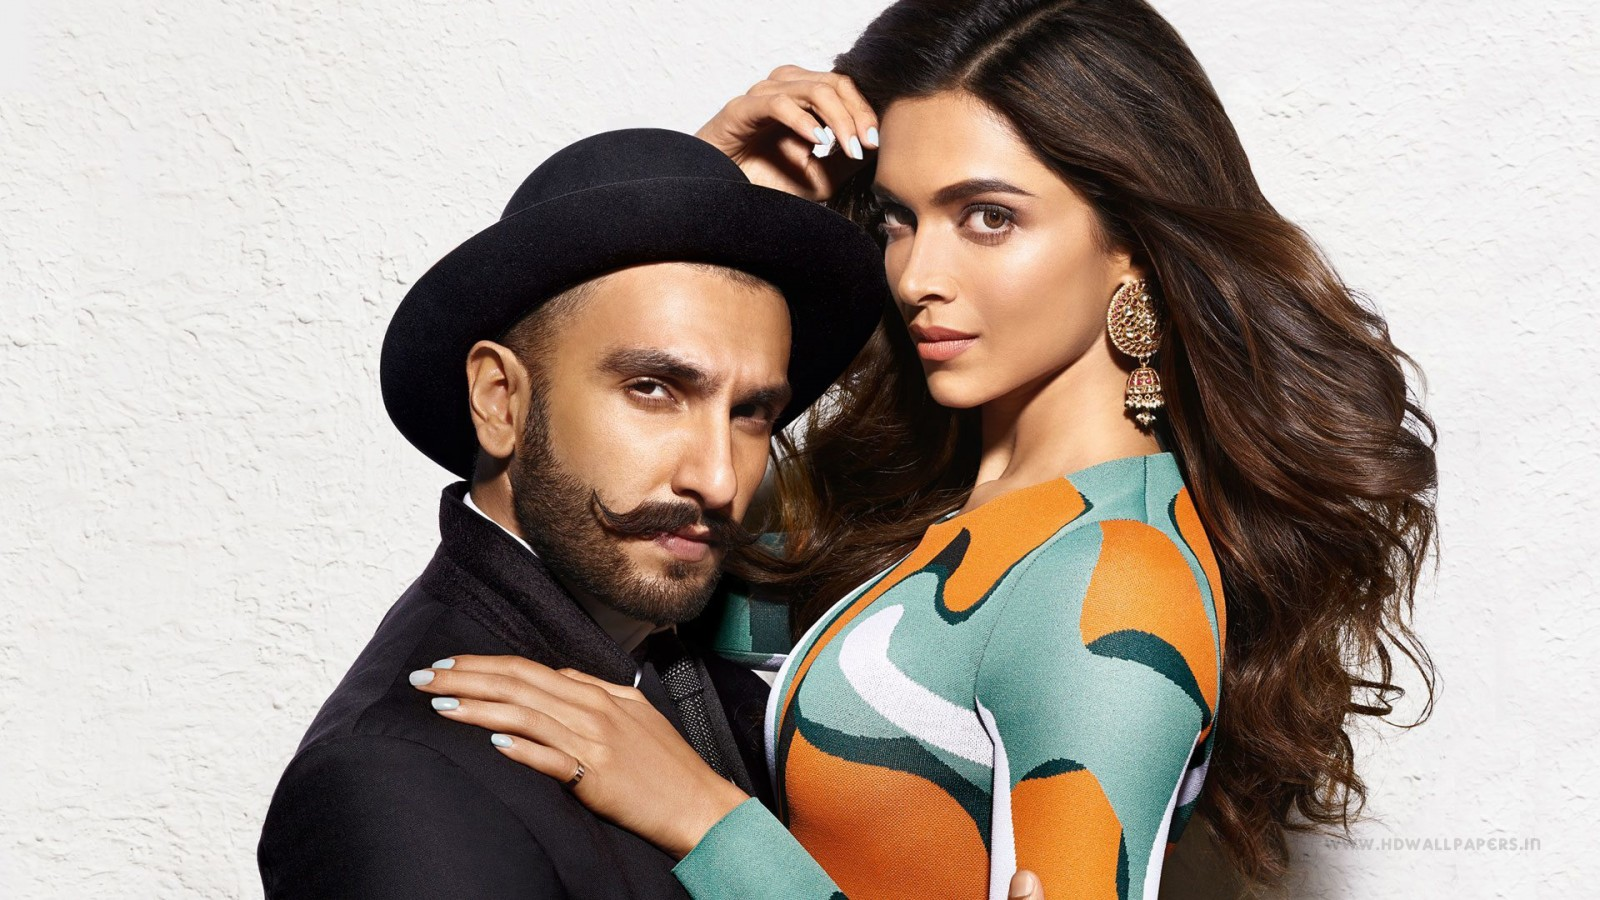 Bollywood Cute Couple Hd Wallpaper Ranveer Singh Deepika Padukone Wallpapers Hd Wallpapers